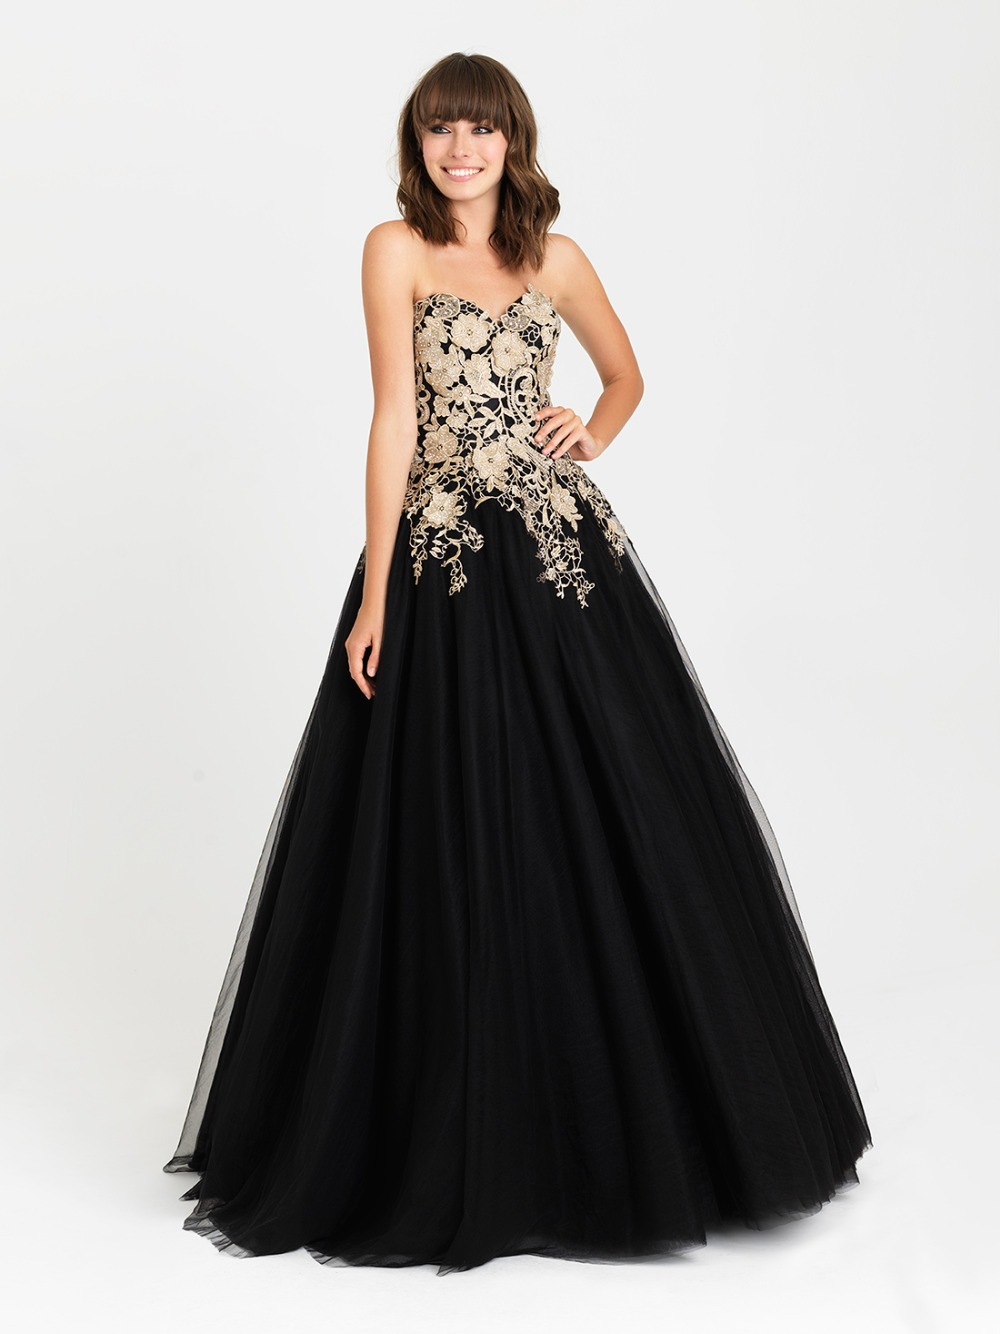 Black and gold ball gown prom dresses | Kica style dress 2018